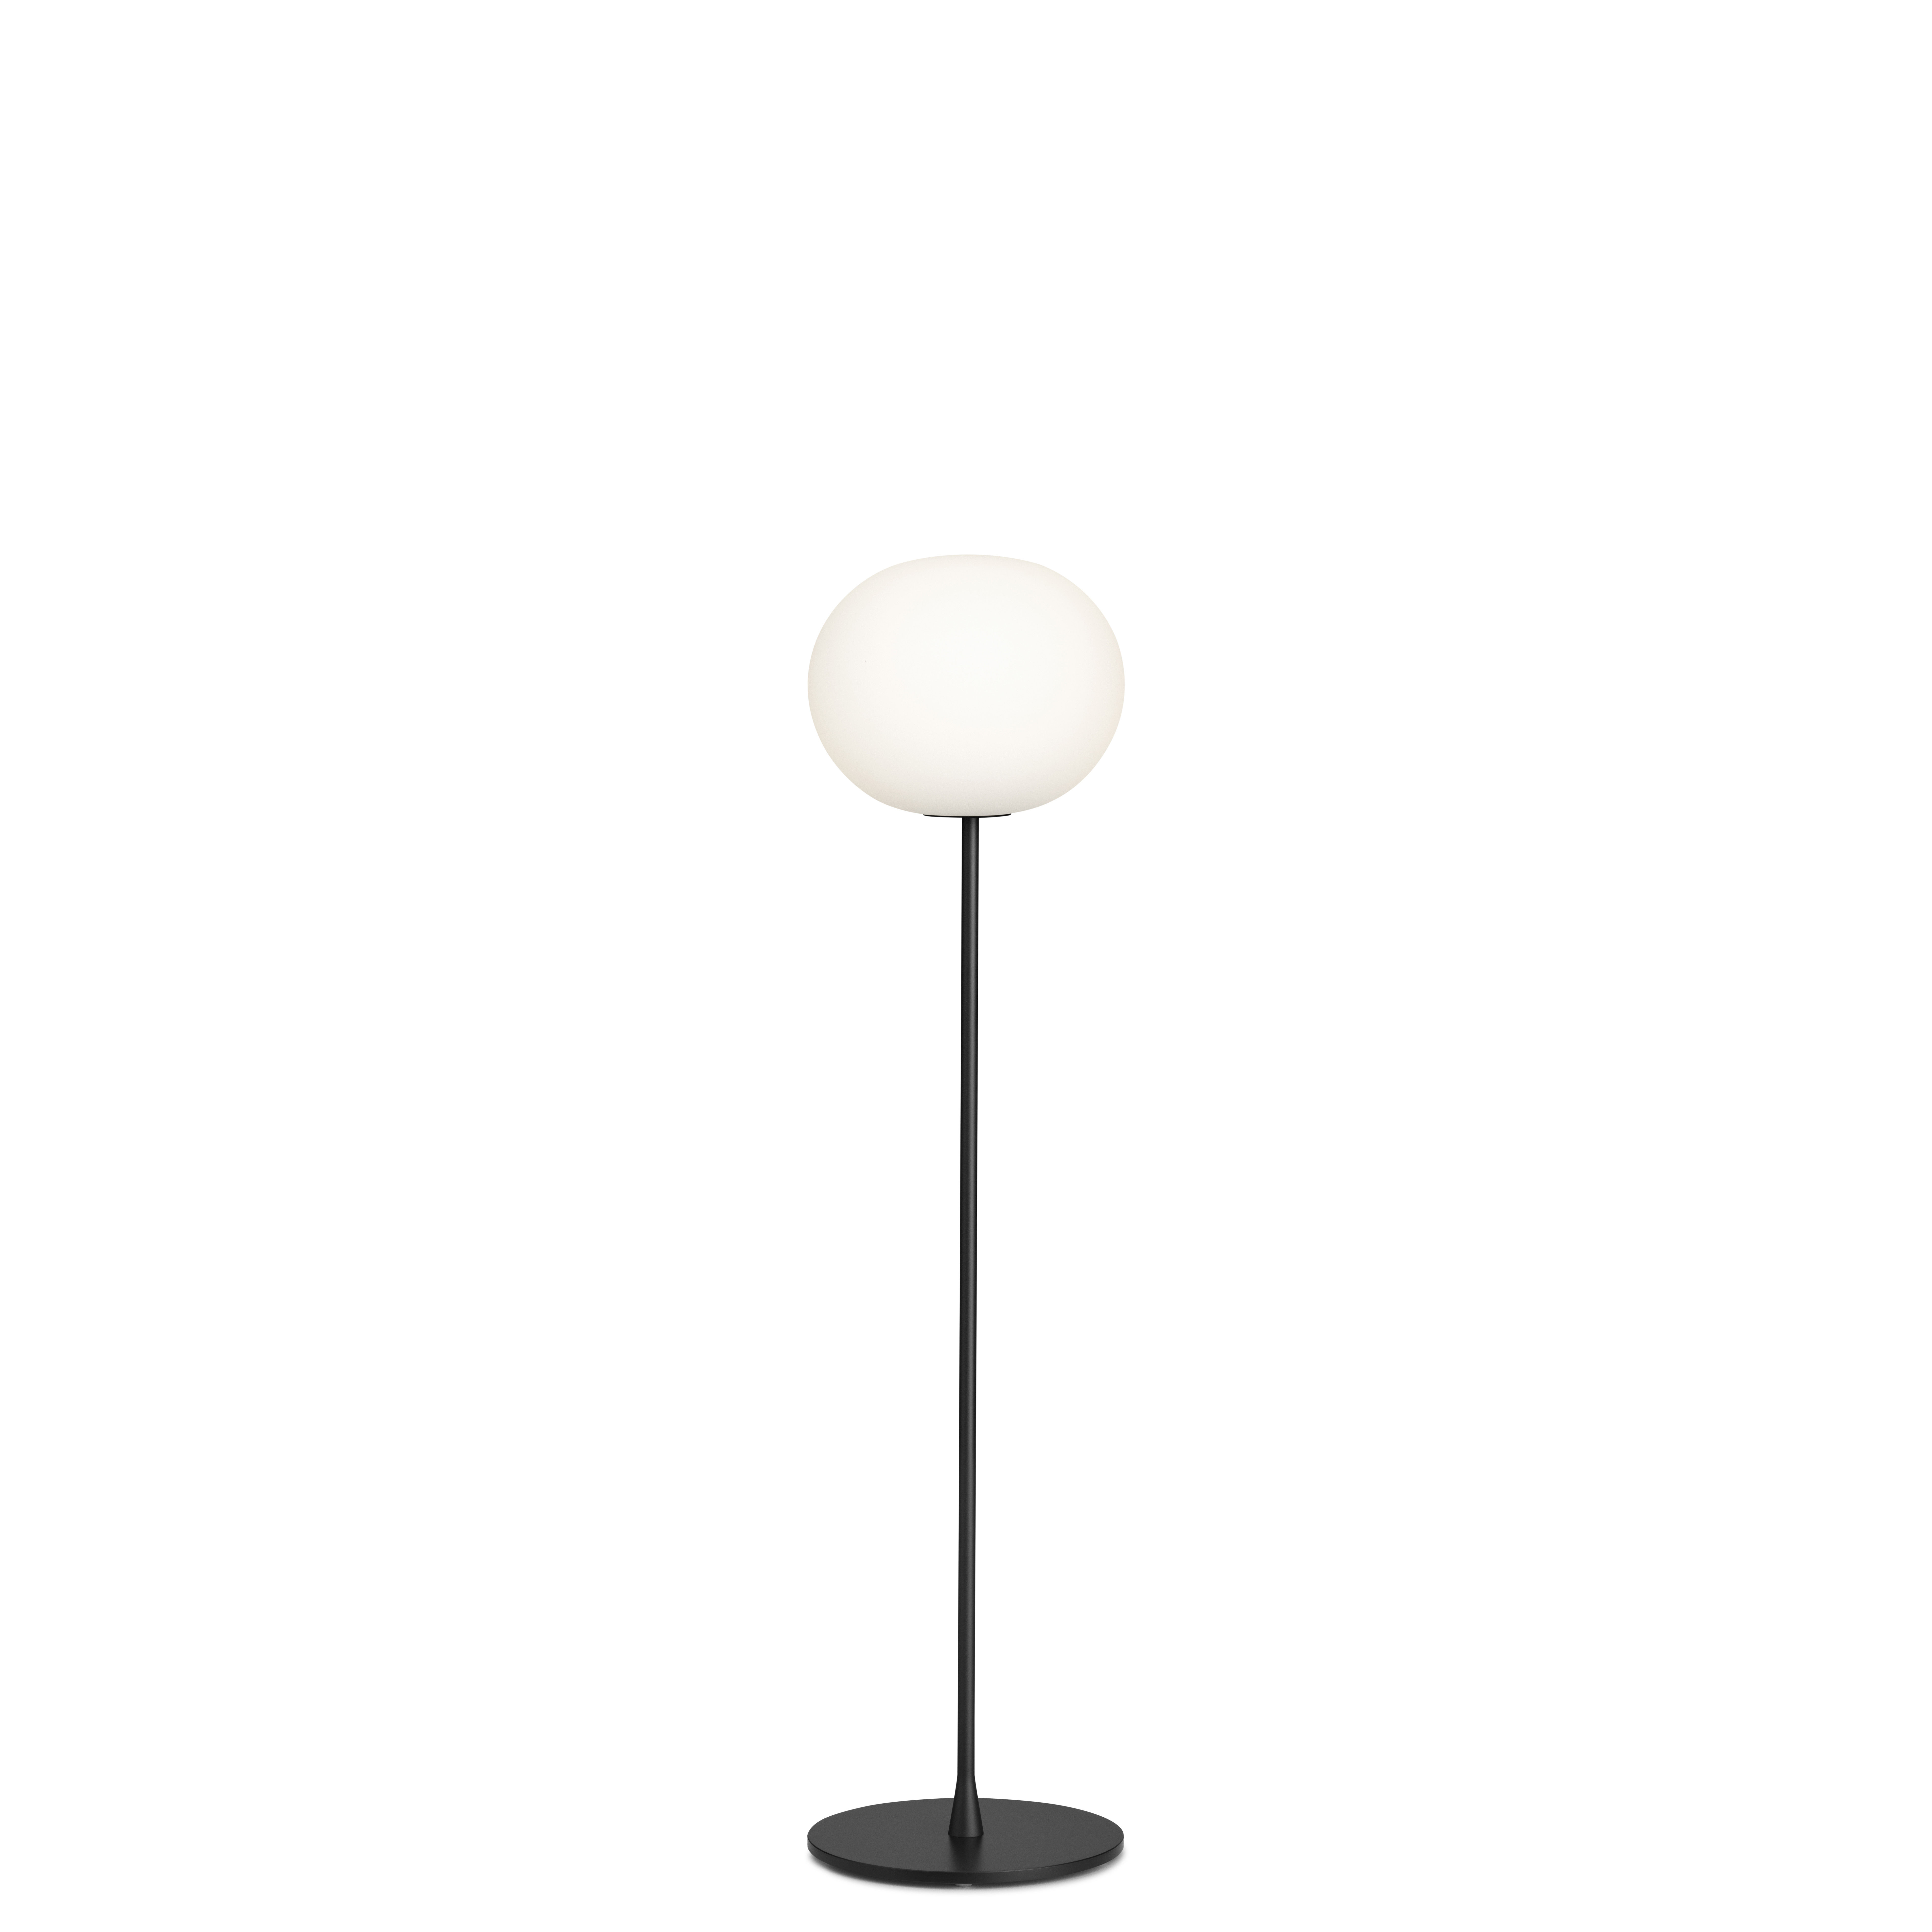 Lighting - Floor lamps - Glo-Ball F1 Floor lamp - / H 135 cm -Mouth-blown glass by Flos - Black - Mouth blown glass, Varnished steel